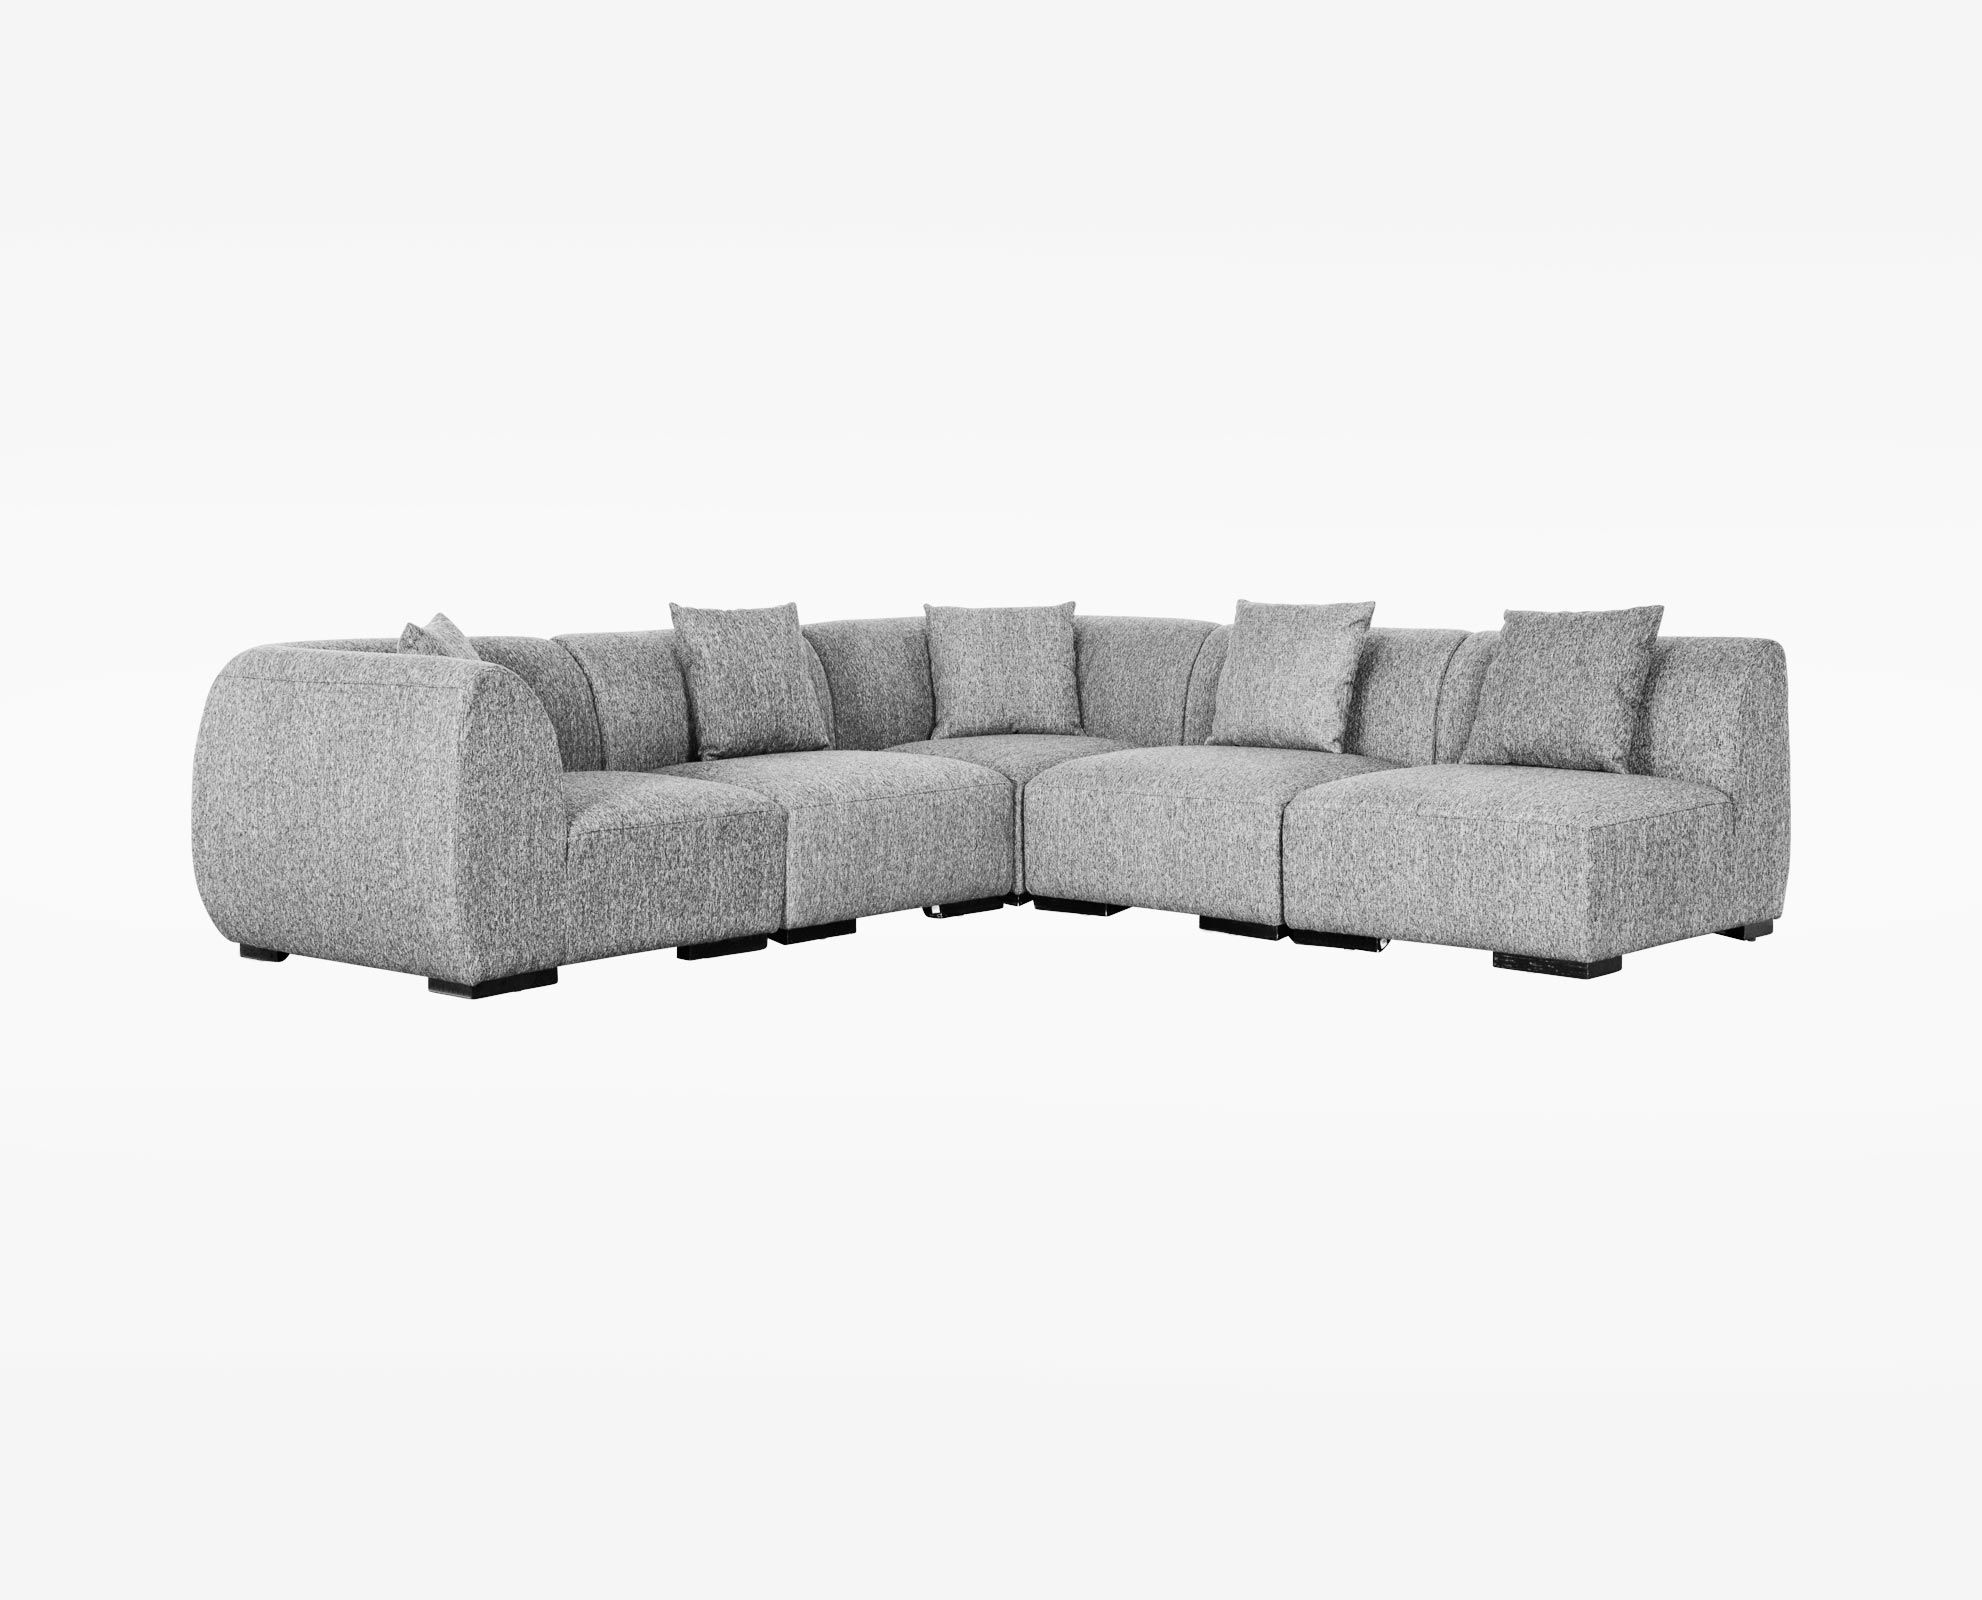 Scandinavian Designs - The Kelsey 5-piece modular sectional offers countless seating arrangements and ultimate  sc 1 st  Pinterest : kelsey sectional - Sectionals, Sofas & Couches